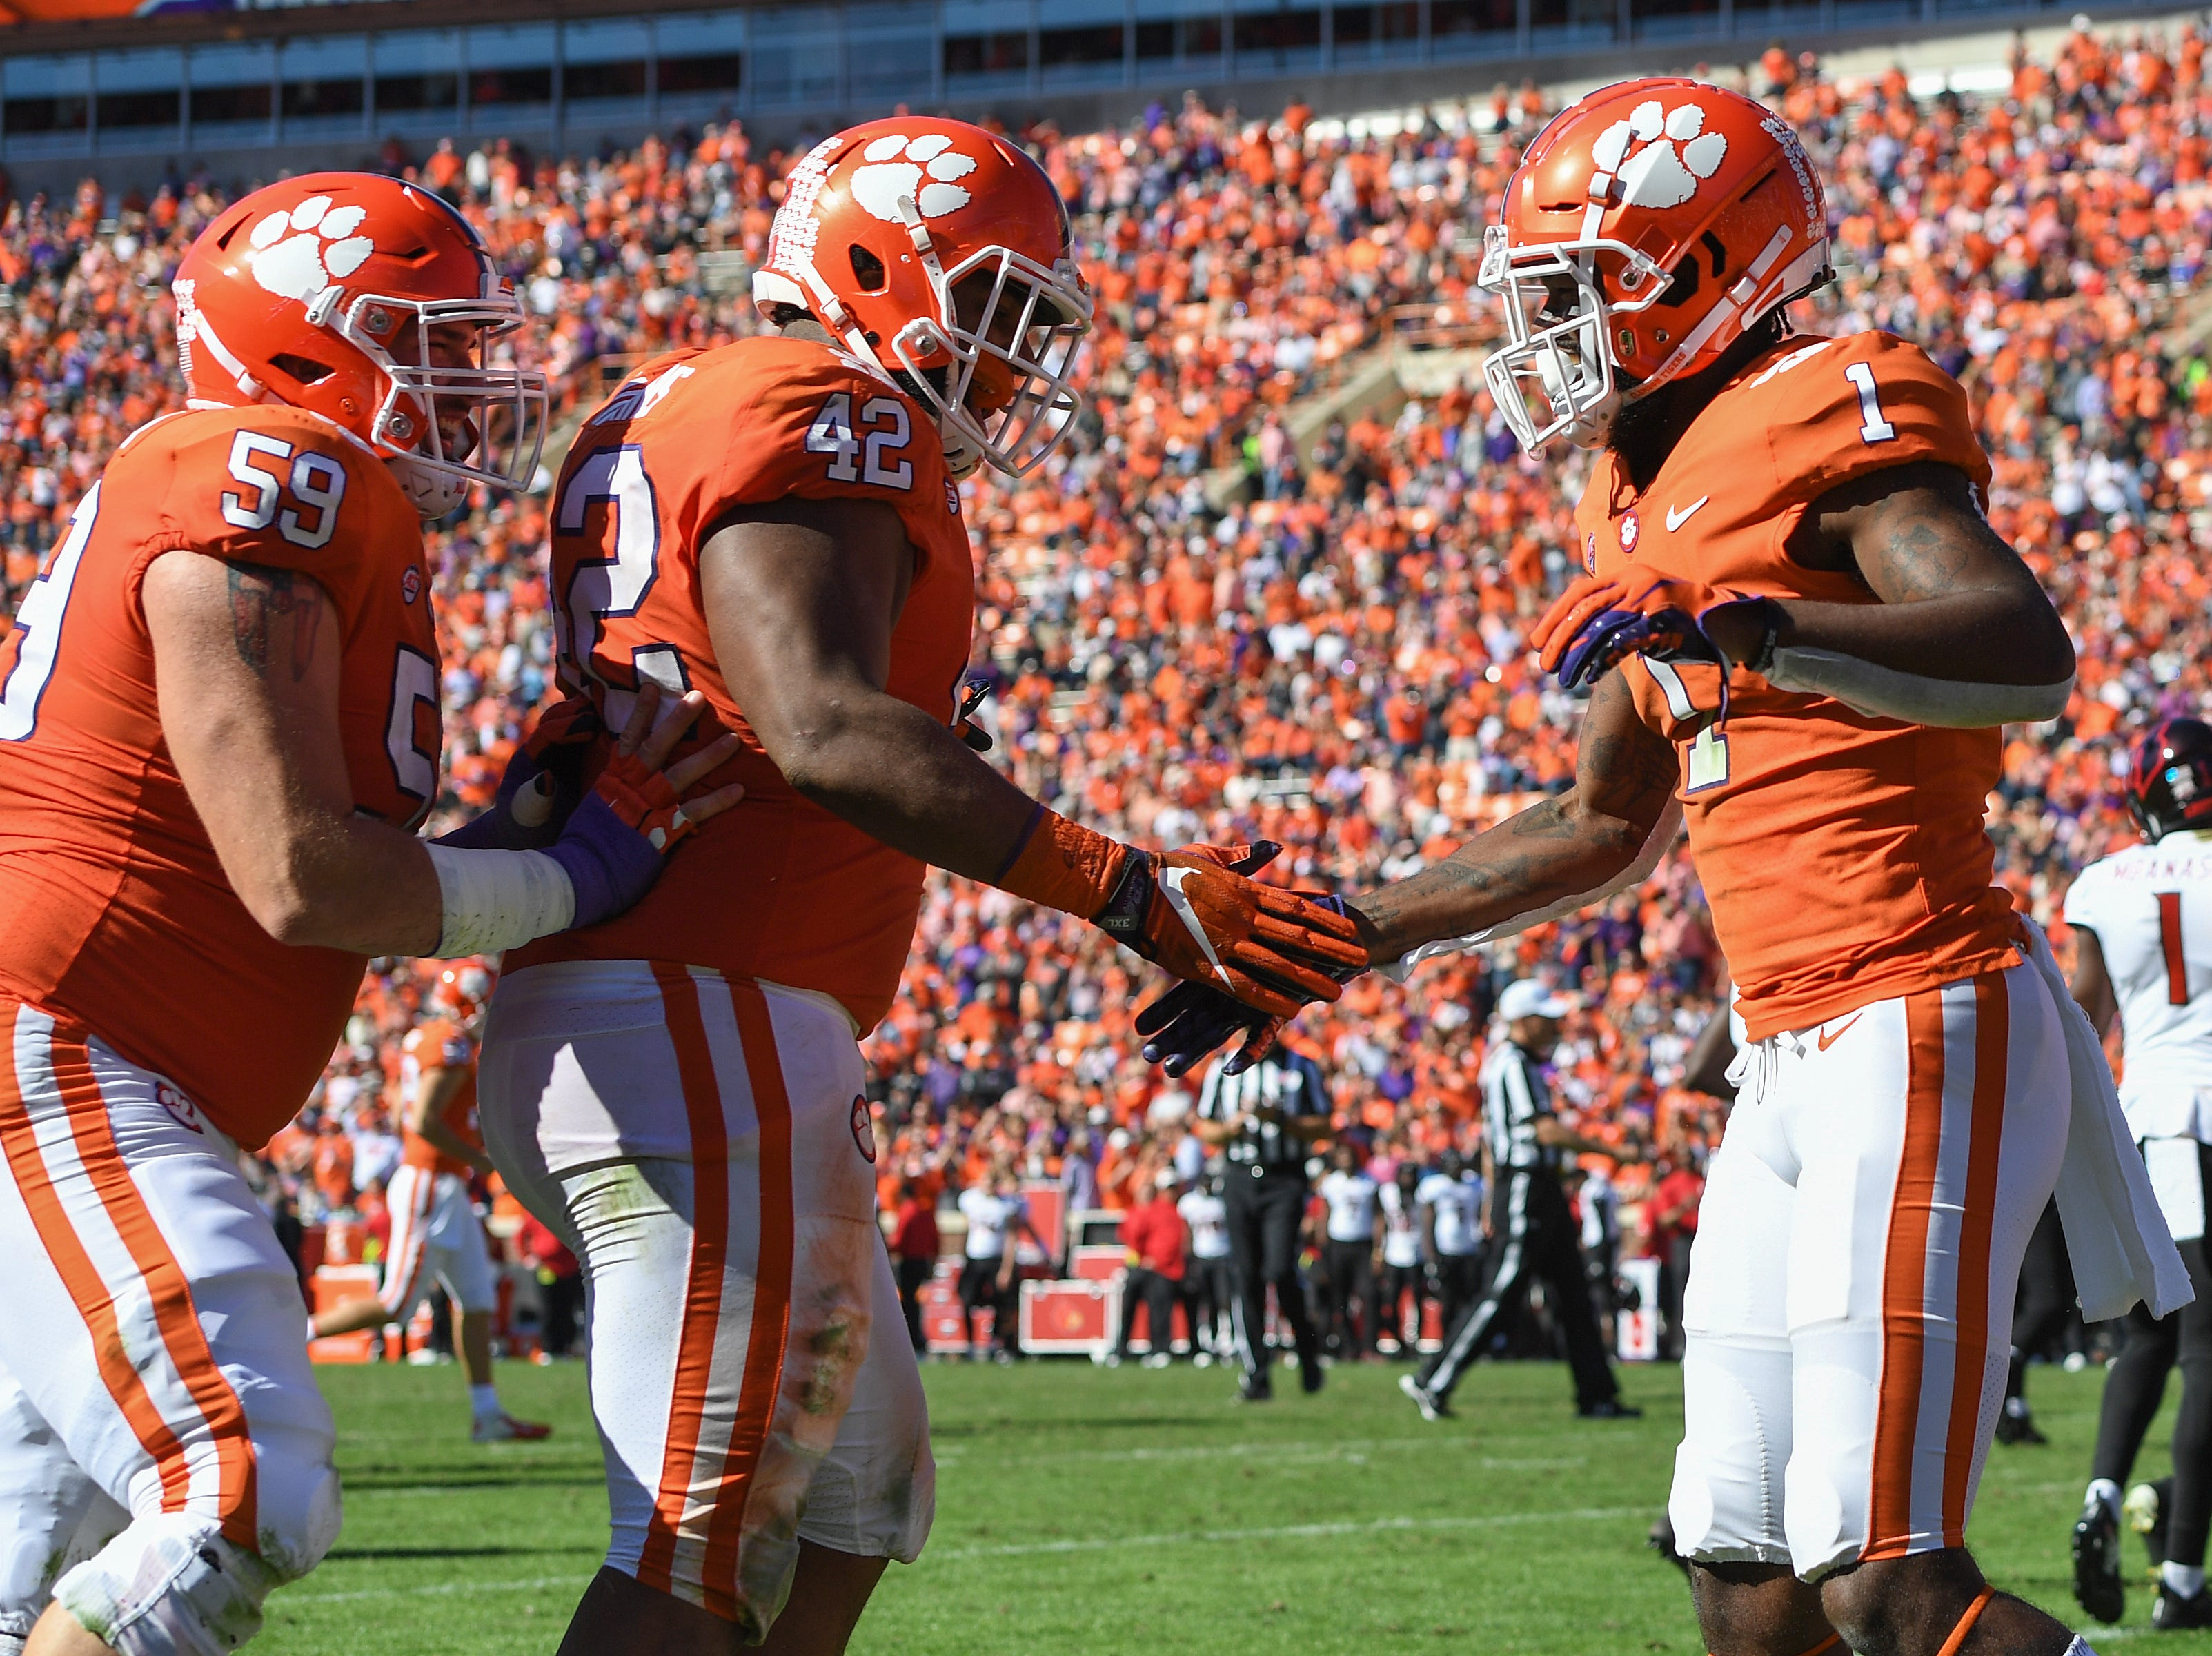 Clemson wide receiver Trevion Thompson (1) celebrates  defensive lineman Christian Wilkins (42) after catching a TD against Louisville during the 3rd quarter Saturday, November 3, 2018 at Clemson's Memorial Stadium.